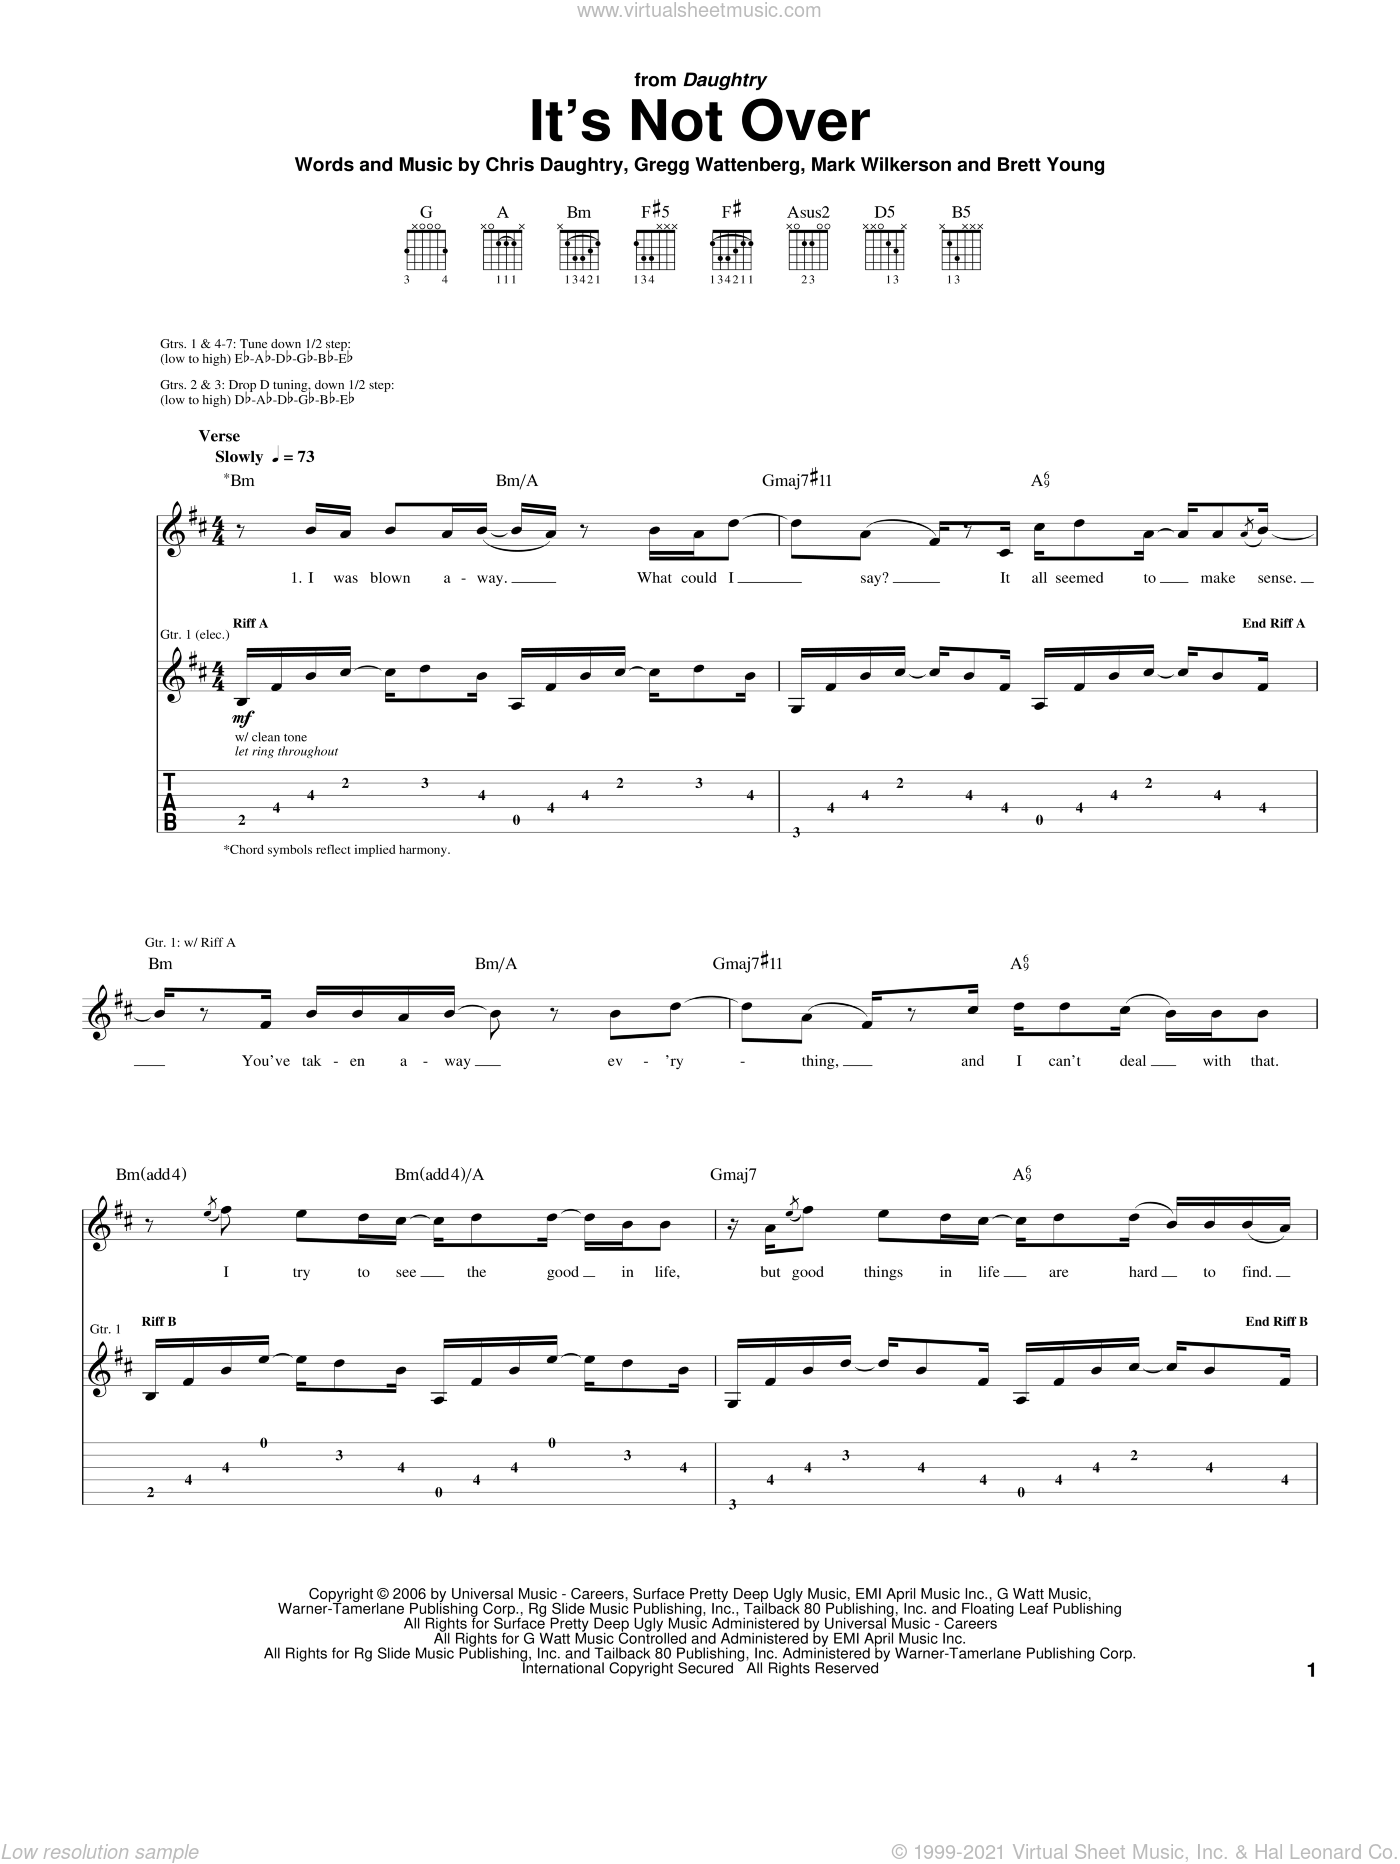 It's Not Over sheet music for guitar (tablature) by Daughtry, American Idol, Brett Young, Chris Daughtry, Gregg Wattenberg and Mark Wilkerson, intermediate skill level